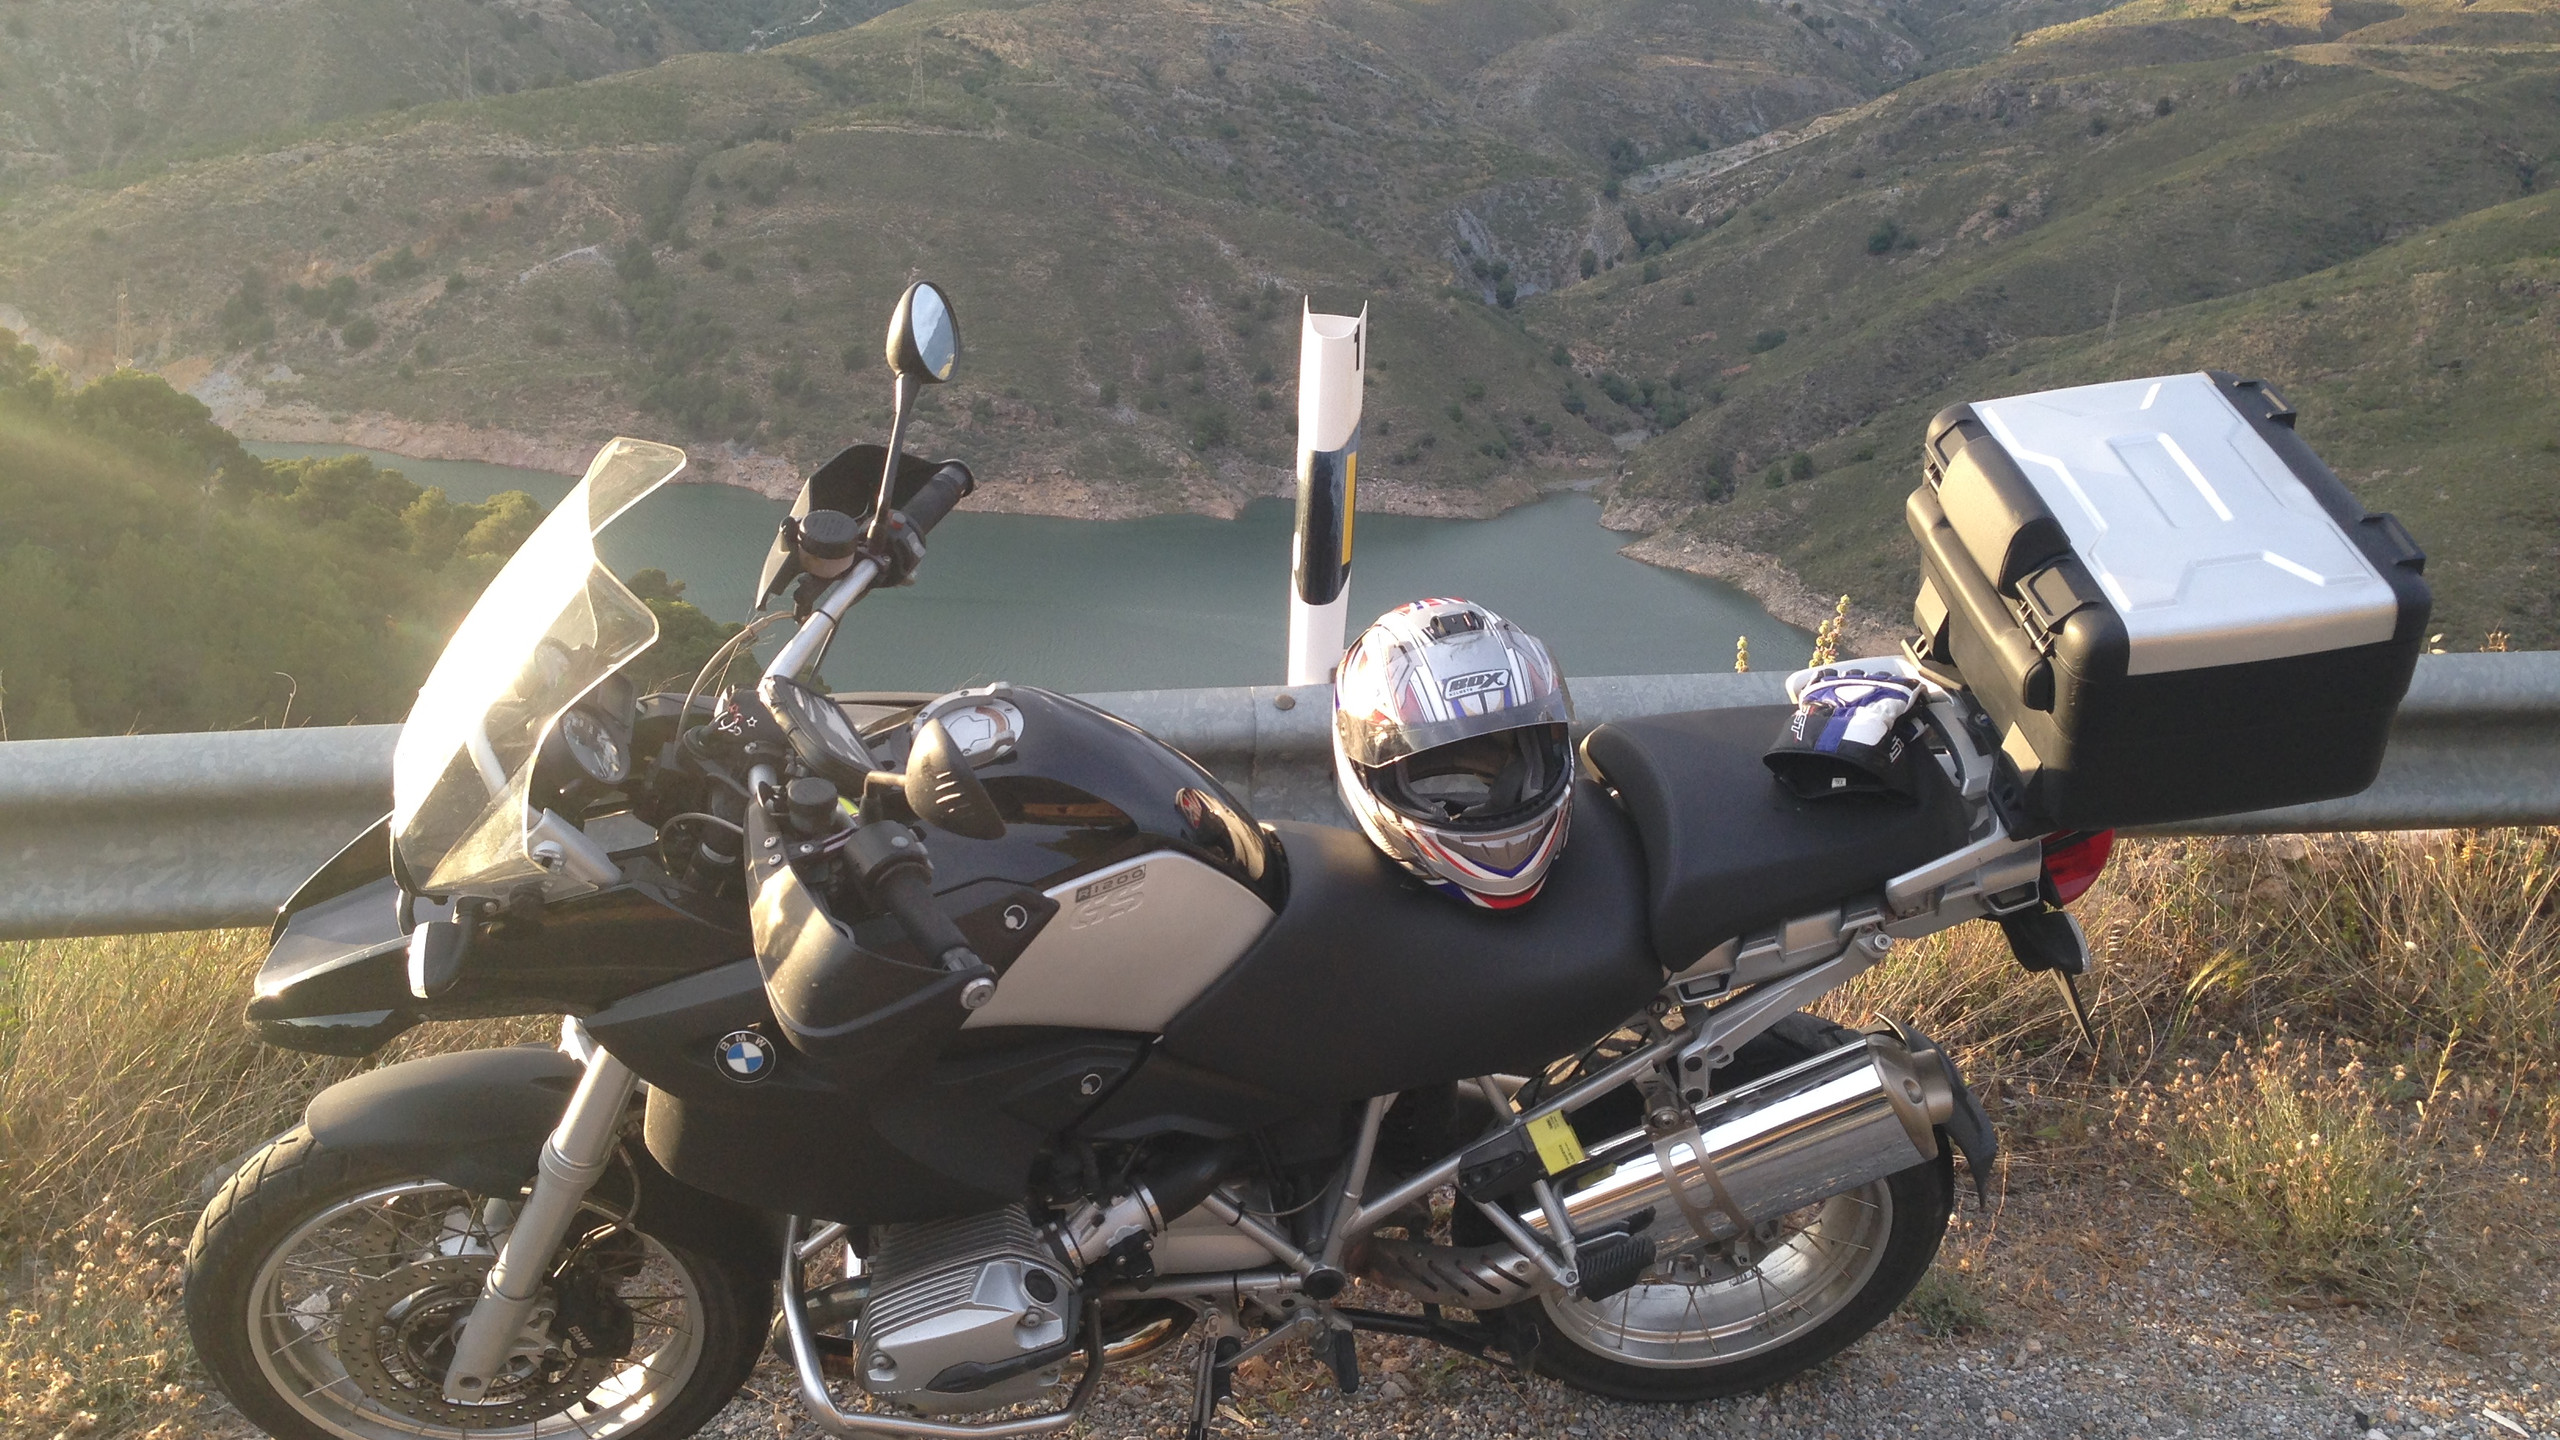 BMW Motorrad parked up in Andalucia, Spain